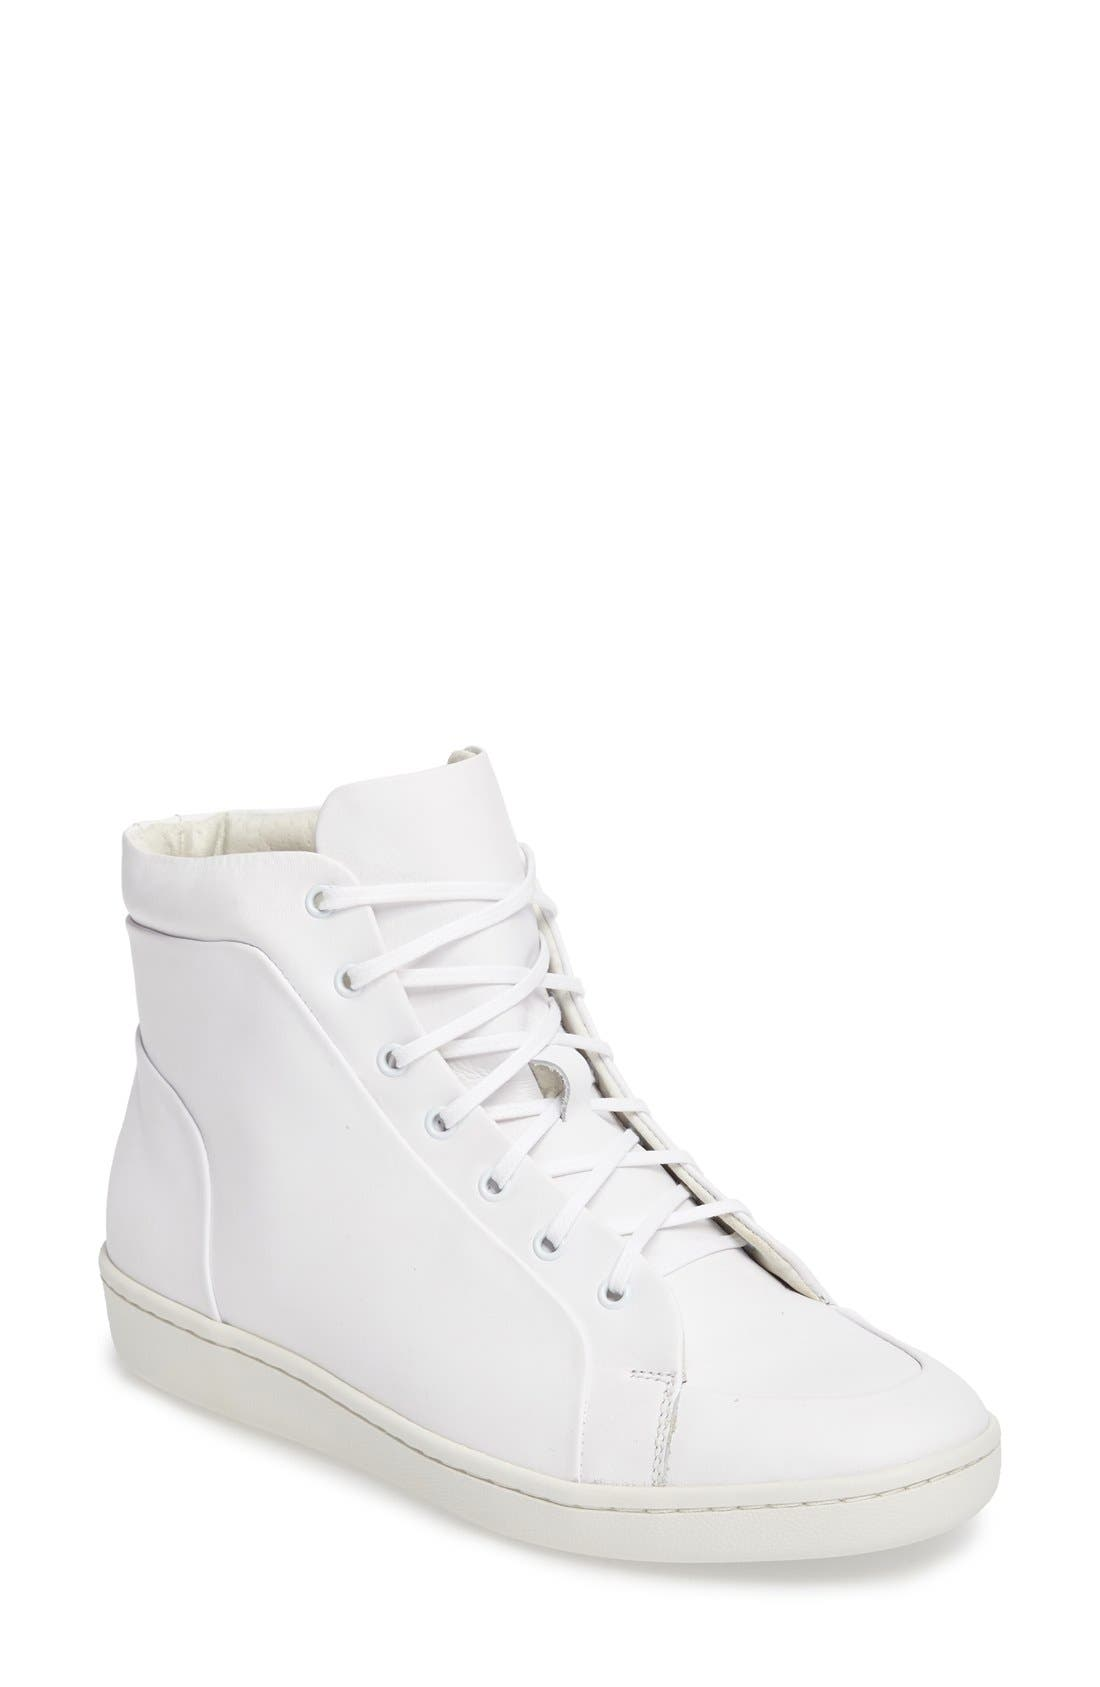 Alternate Image 1 Selected - Kenneth Cole New York Molly High Top Sneaker (Women)